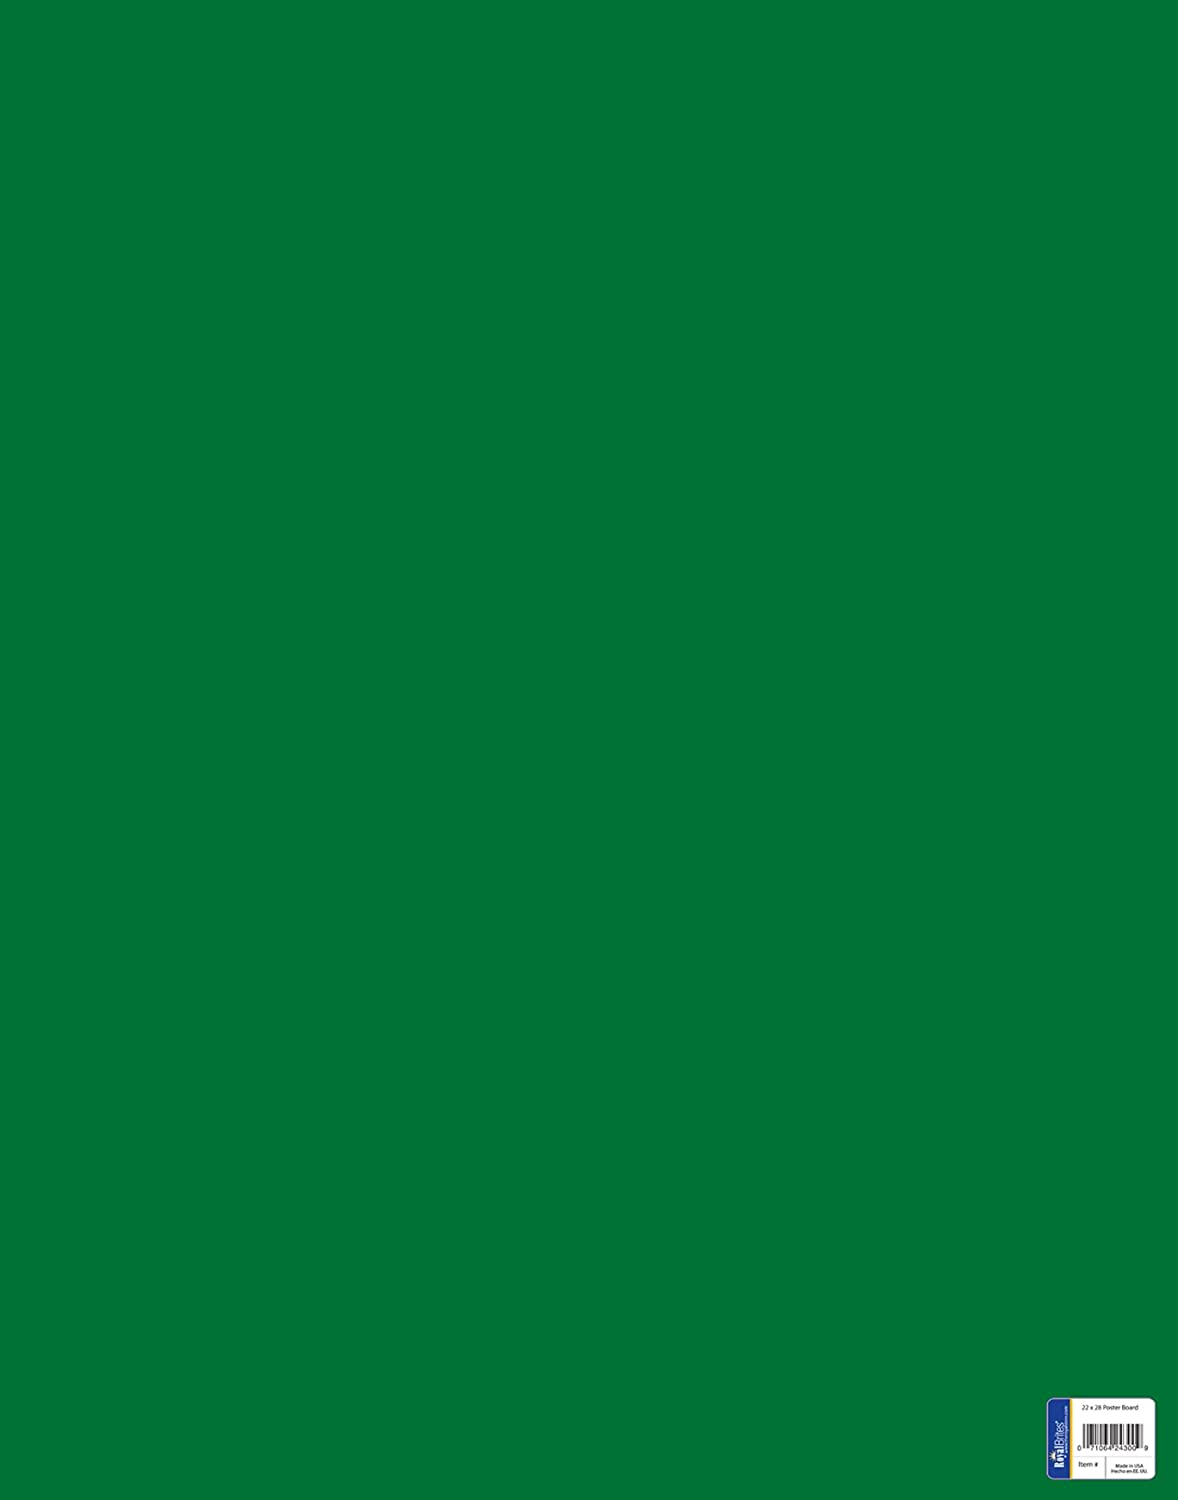 Royal Consumer Poster Board, Green, 22 x 28 Inches, Pack of 25 (24307B) : Ordinary Display Boards : Office Products